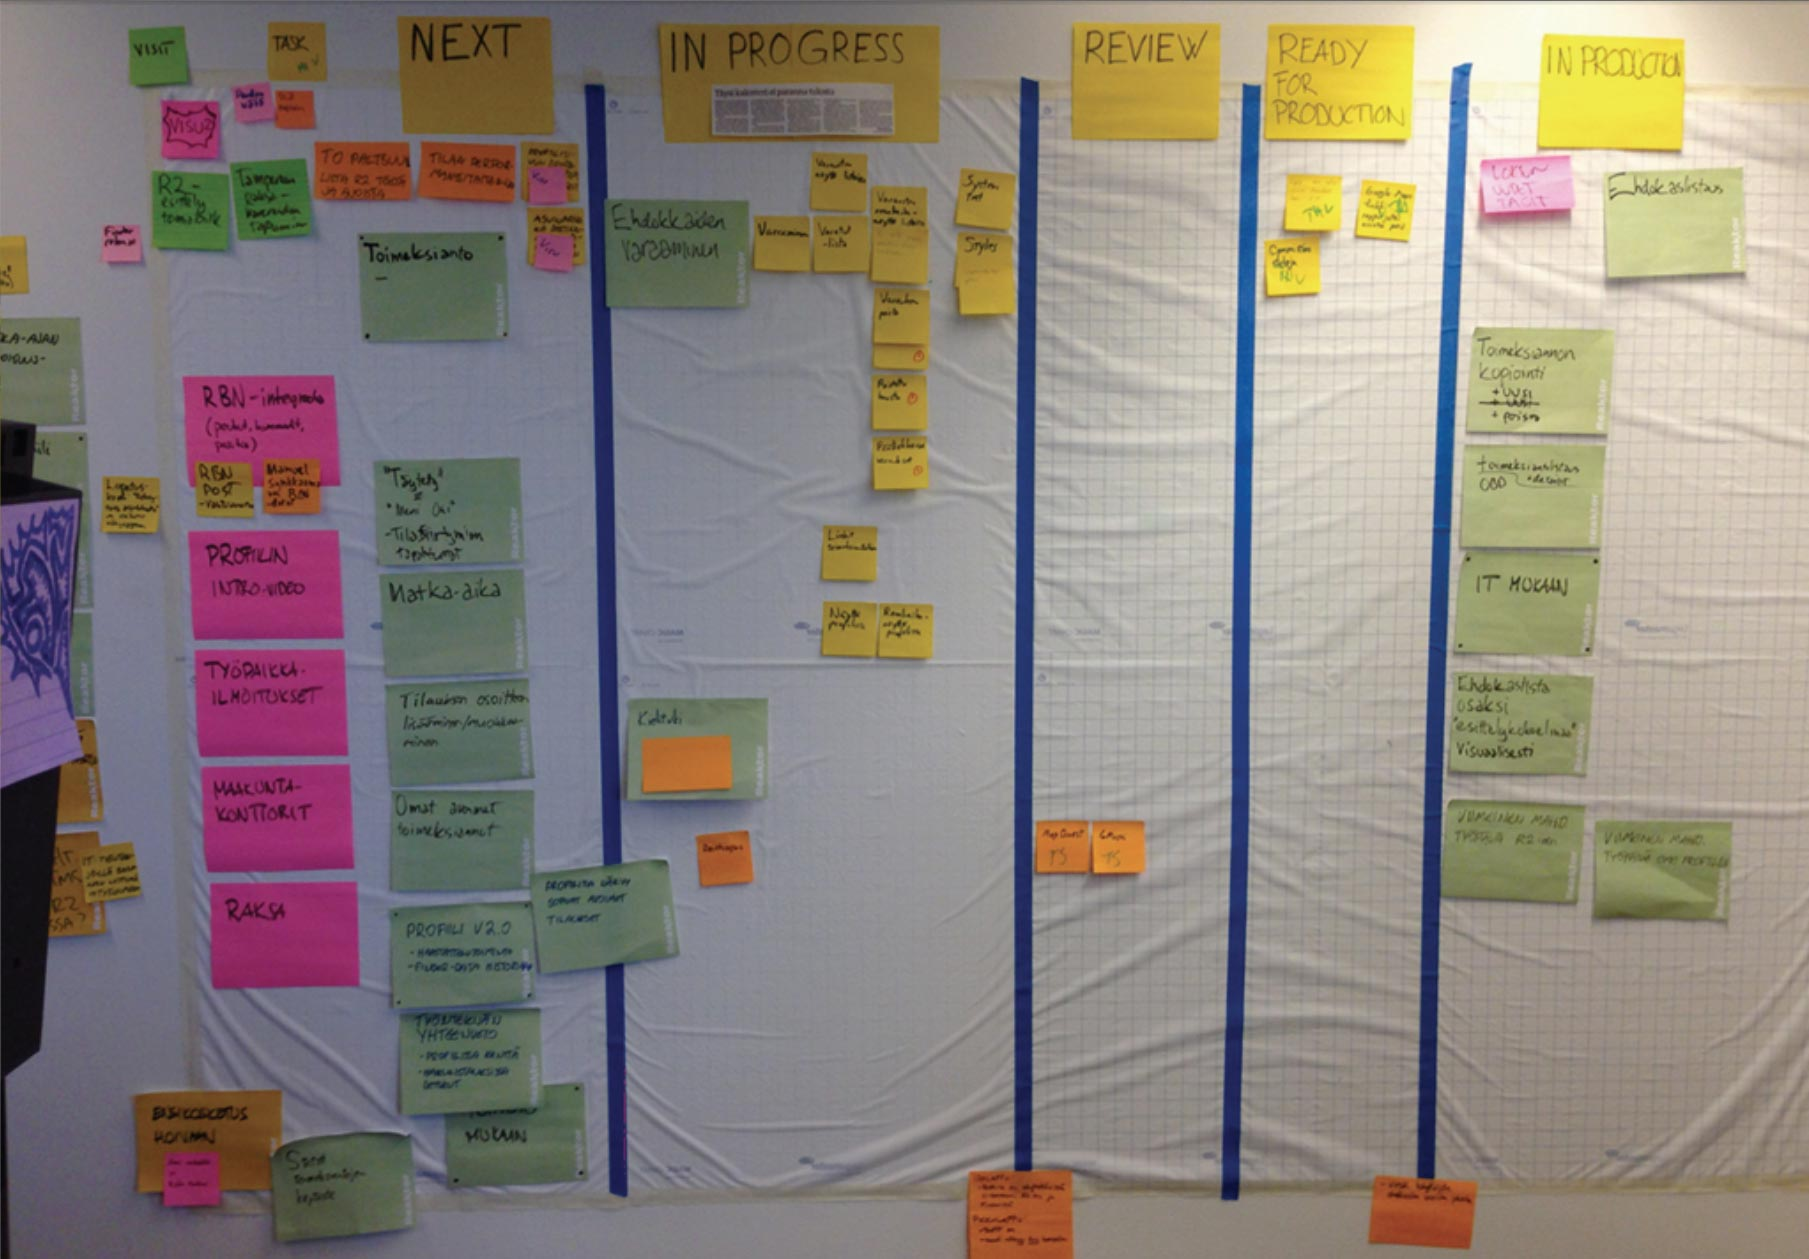 A picture of Reaktor's kanban board.